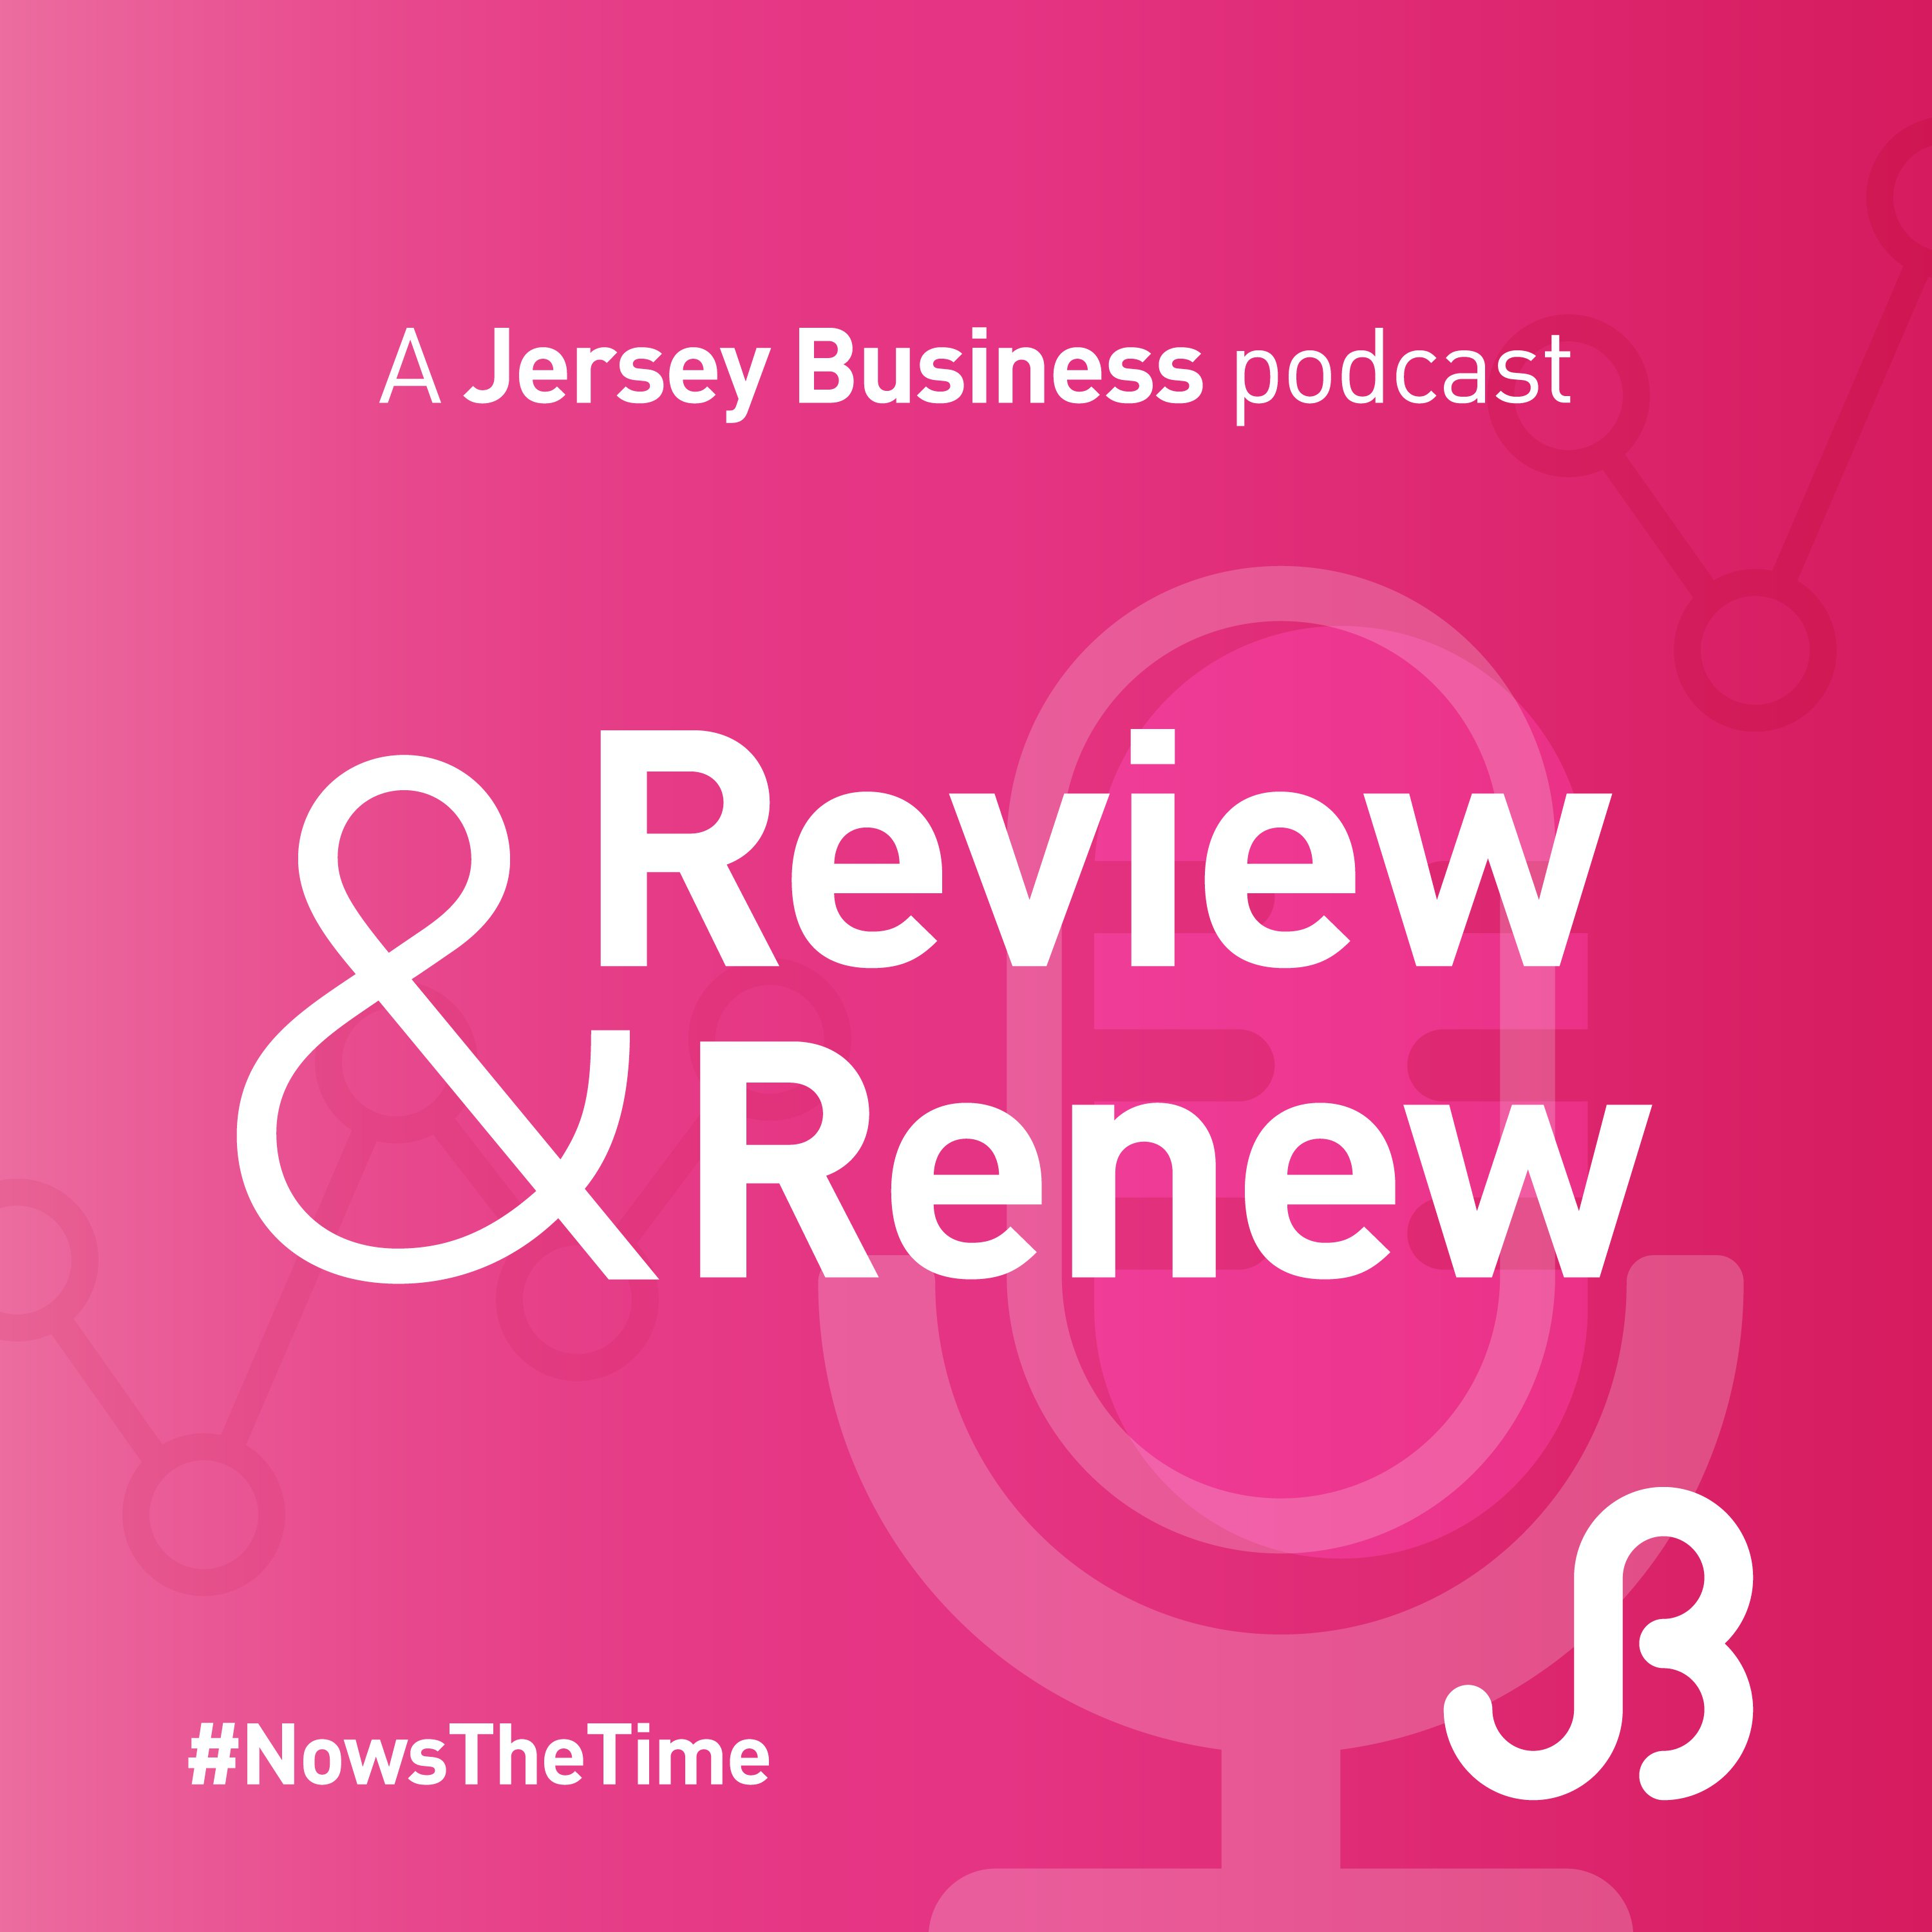 Review and Renew: The Jersey Business Podcast